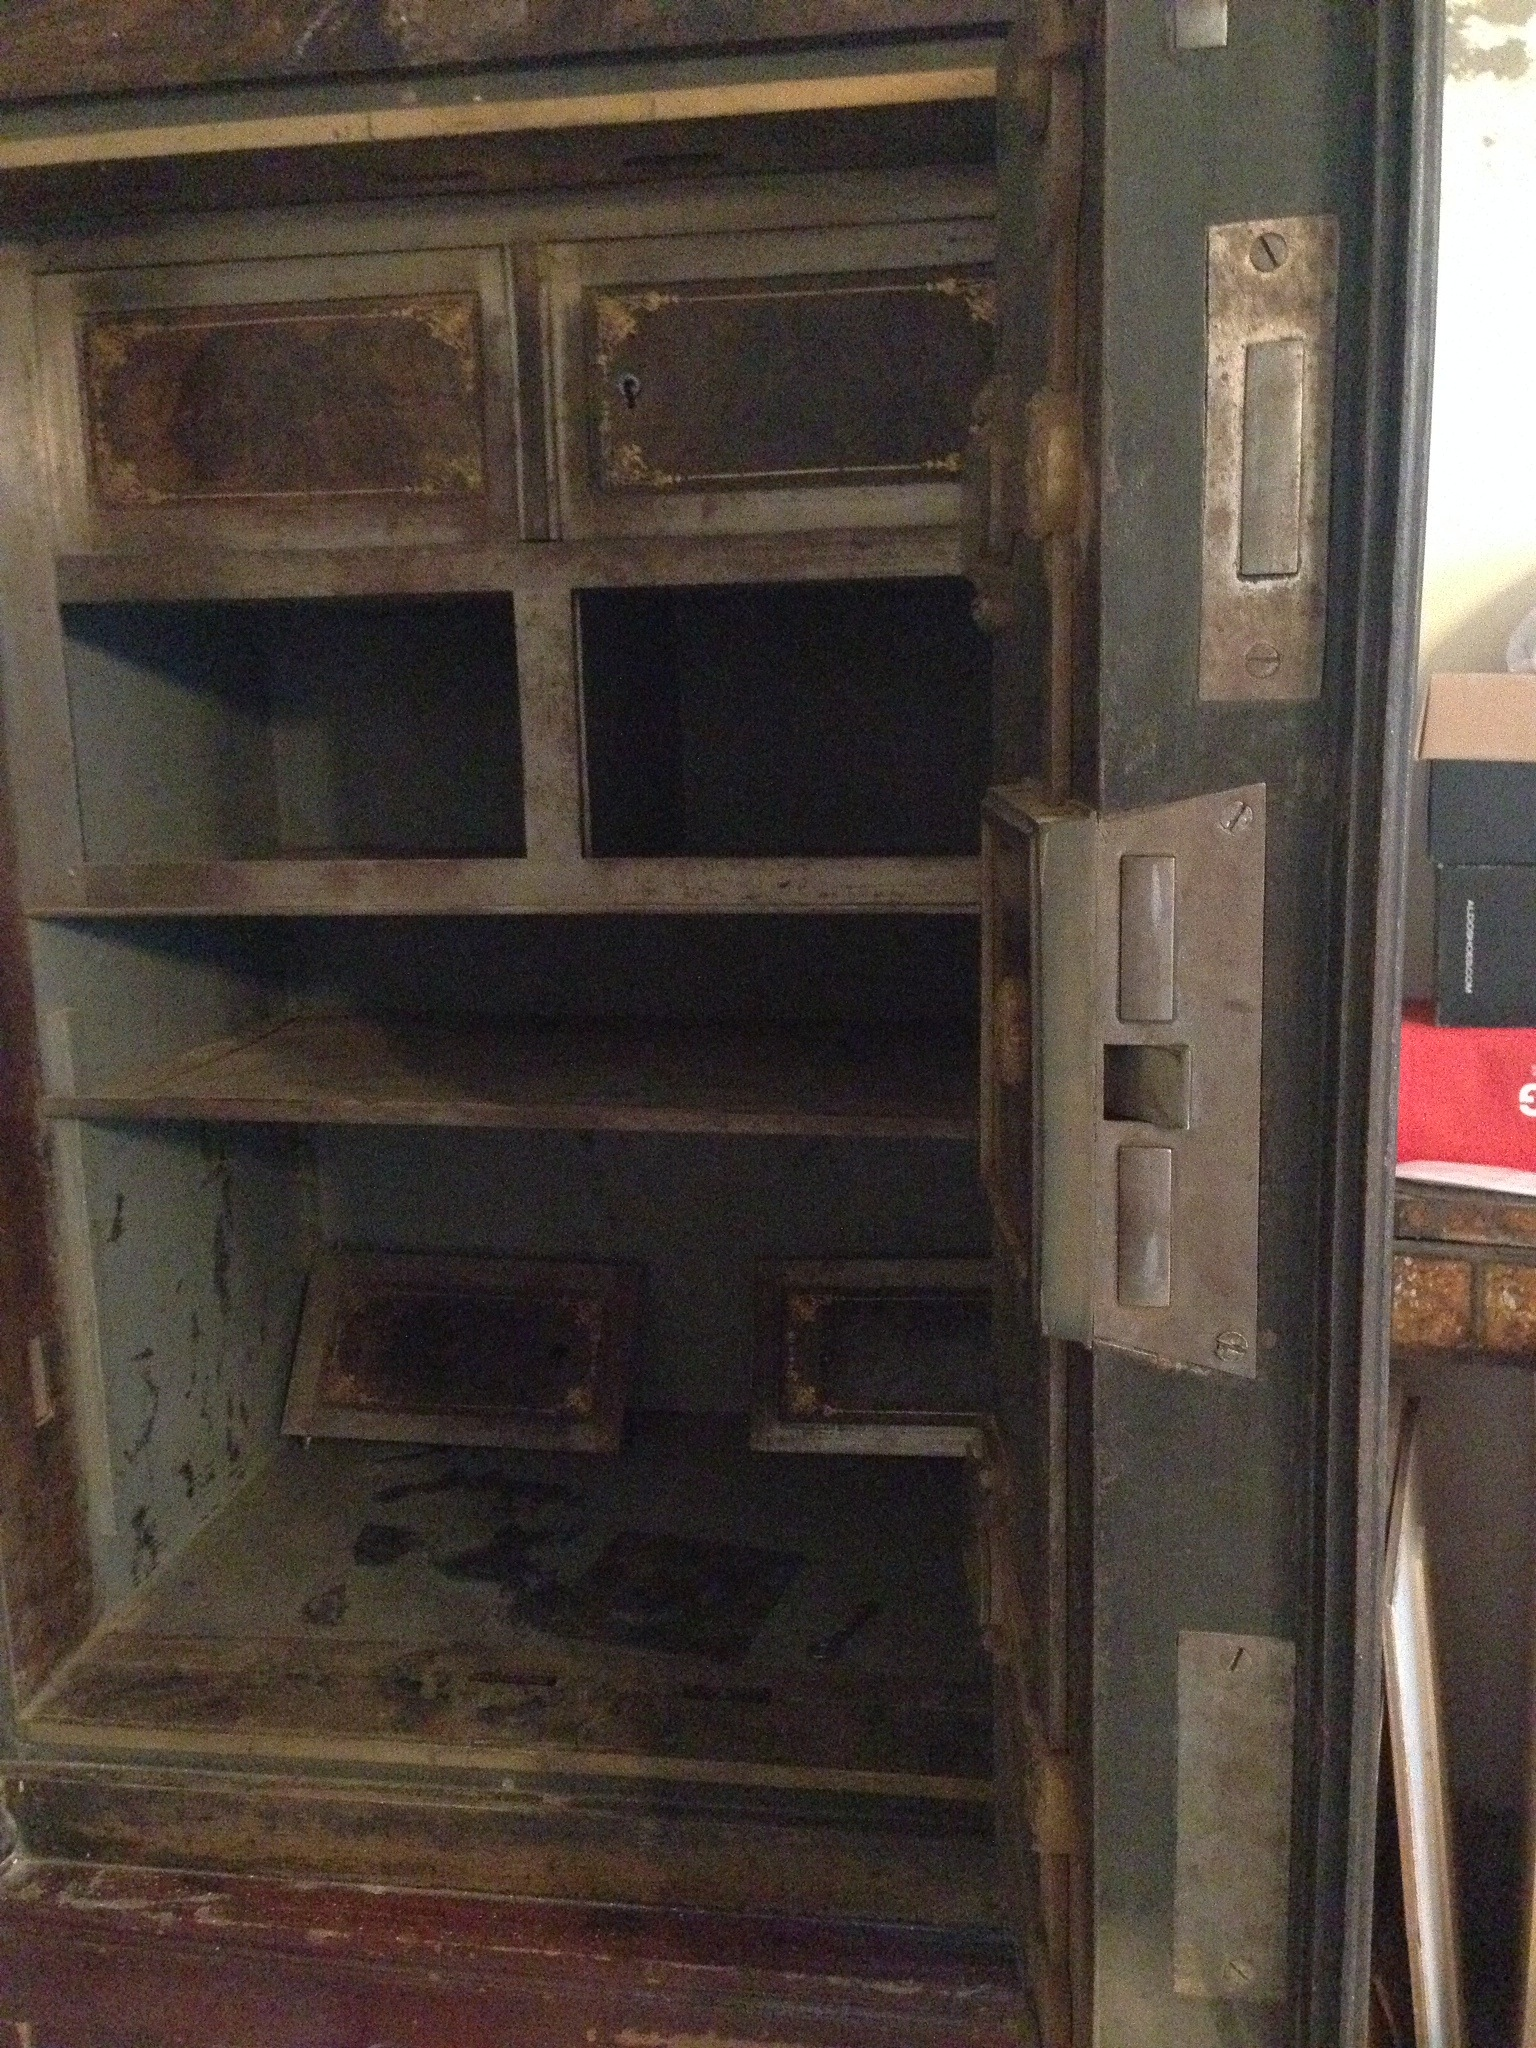 Antique German Safe For Sale Classifieds